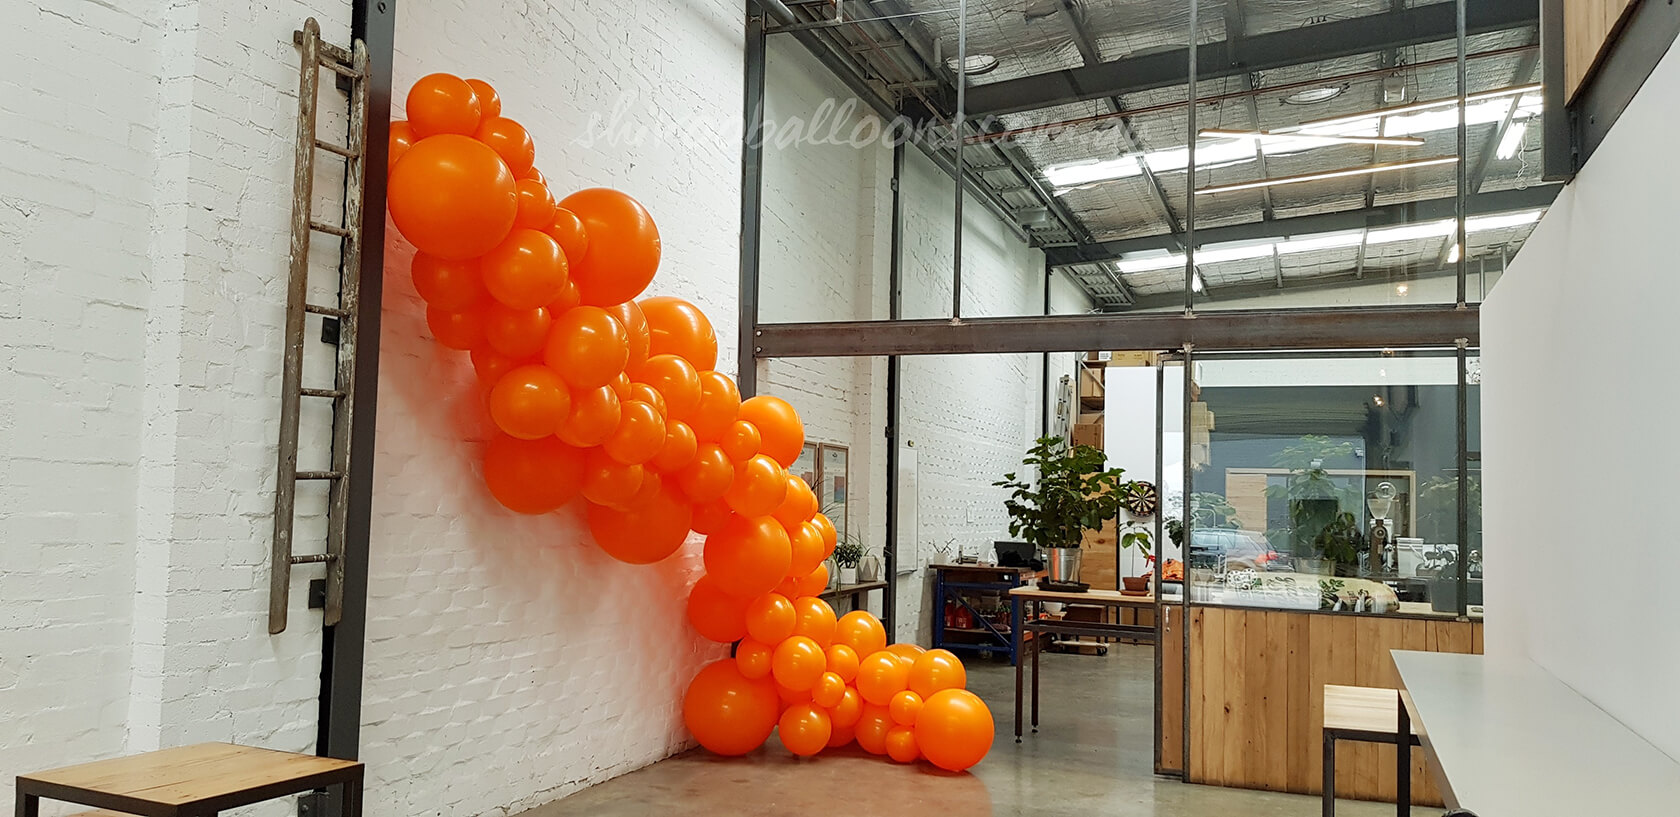 See Our Events! - image CE-42 on https://shivooballoons.com.au